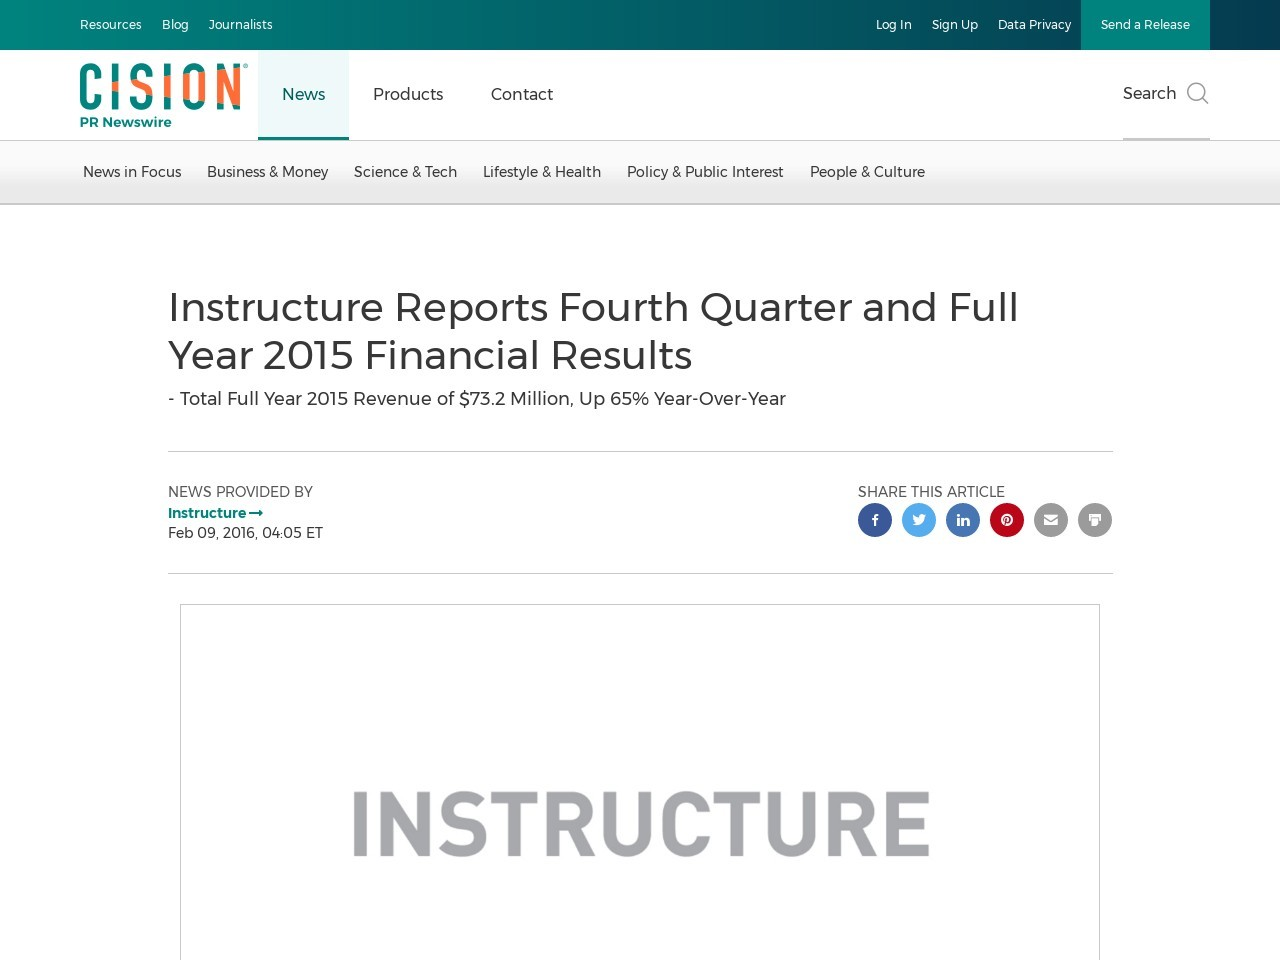 Instructure Reports Fourth Quarter and Full Year 2015 Financial Results